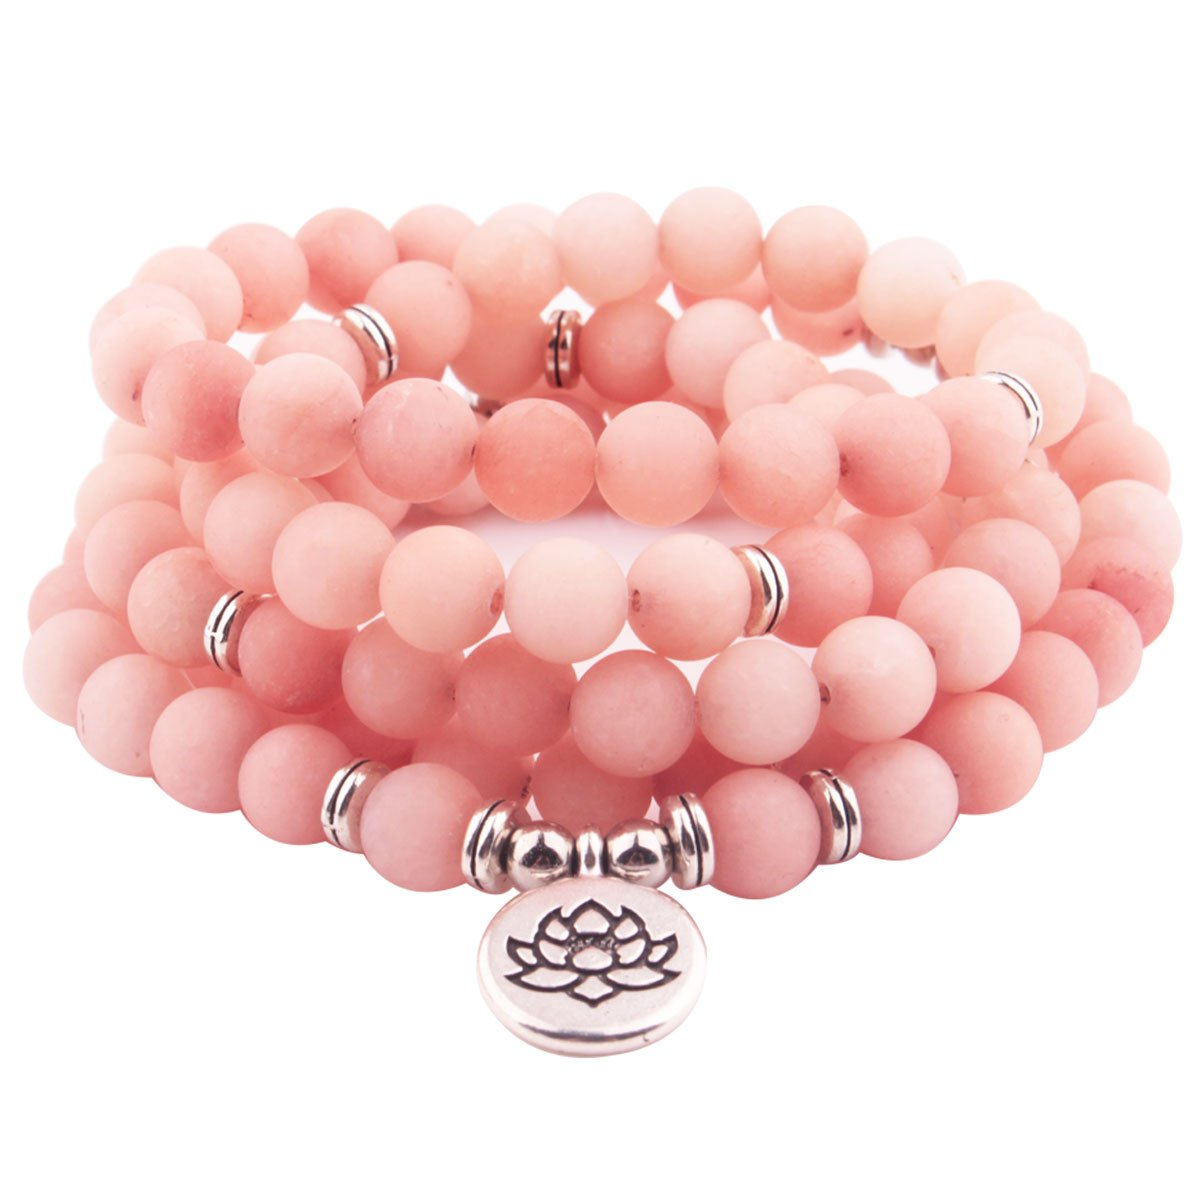 GVUSMIL 8mm Mala Amazonite 108 Beads Necklace for Yoga Buddhist Rosary Prayer Charm Bracelet made by Natural Gemstone Agate Jade for Women Men (Pink opal)